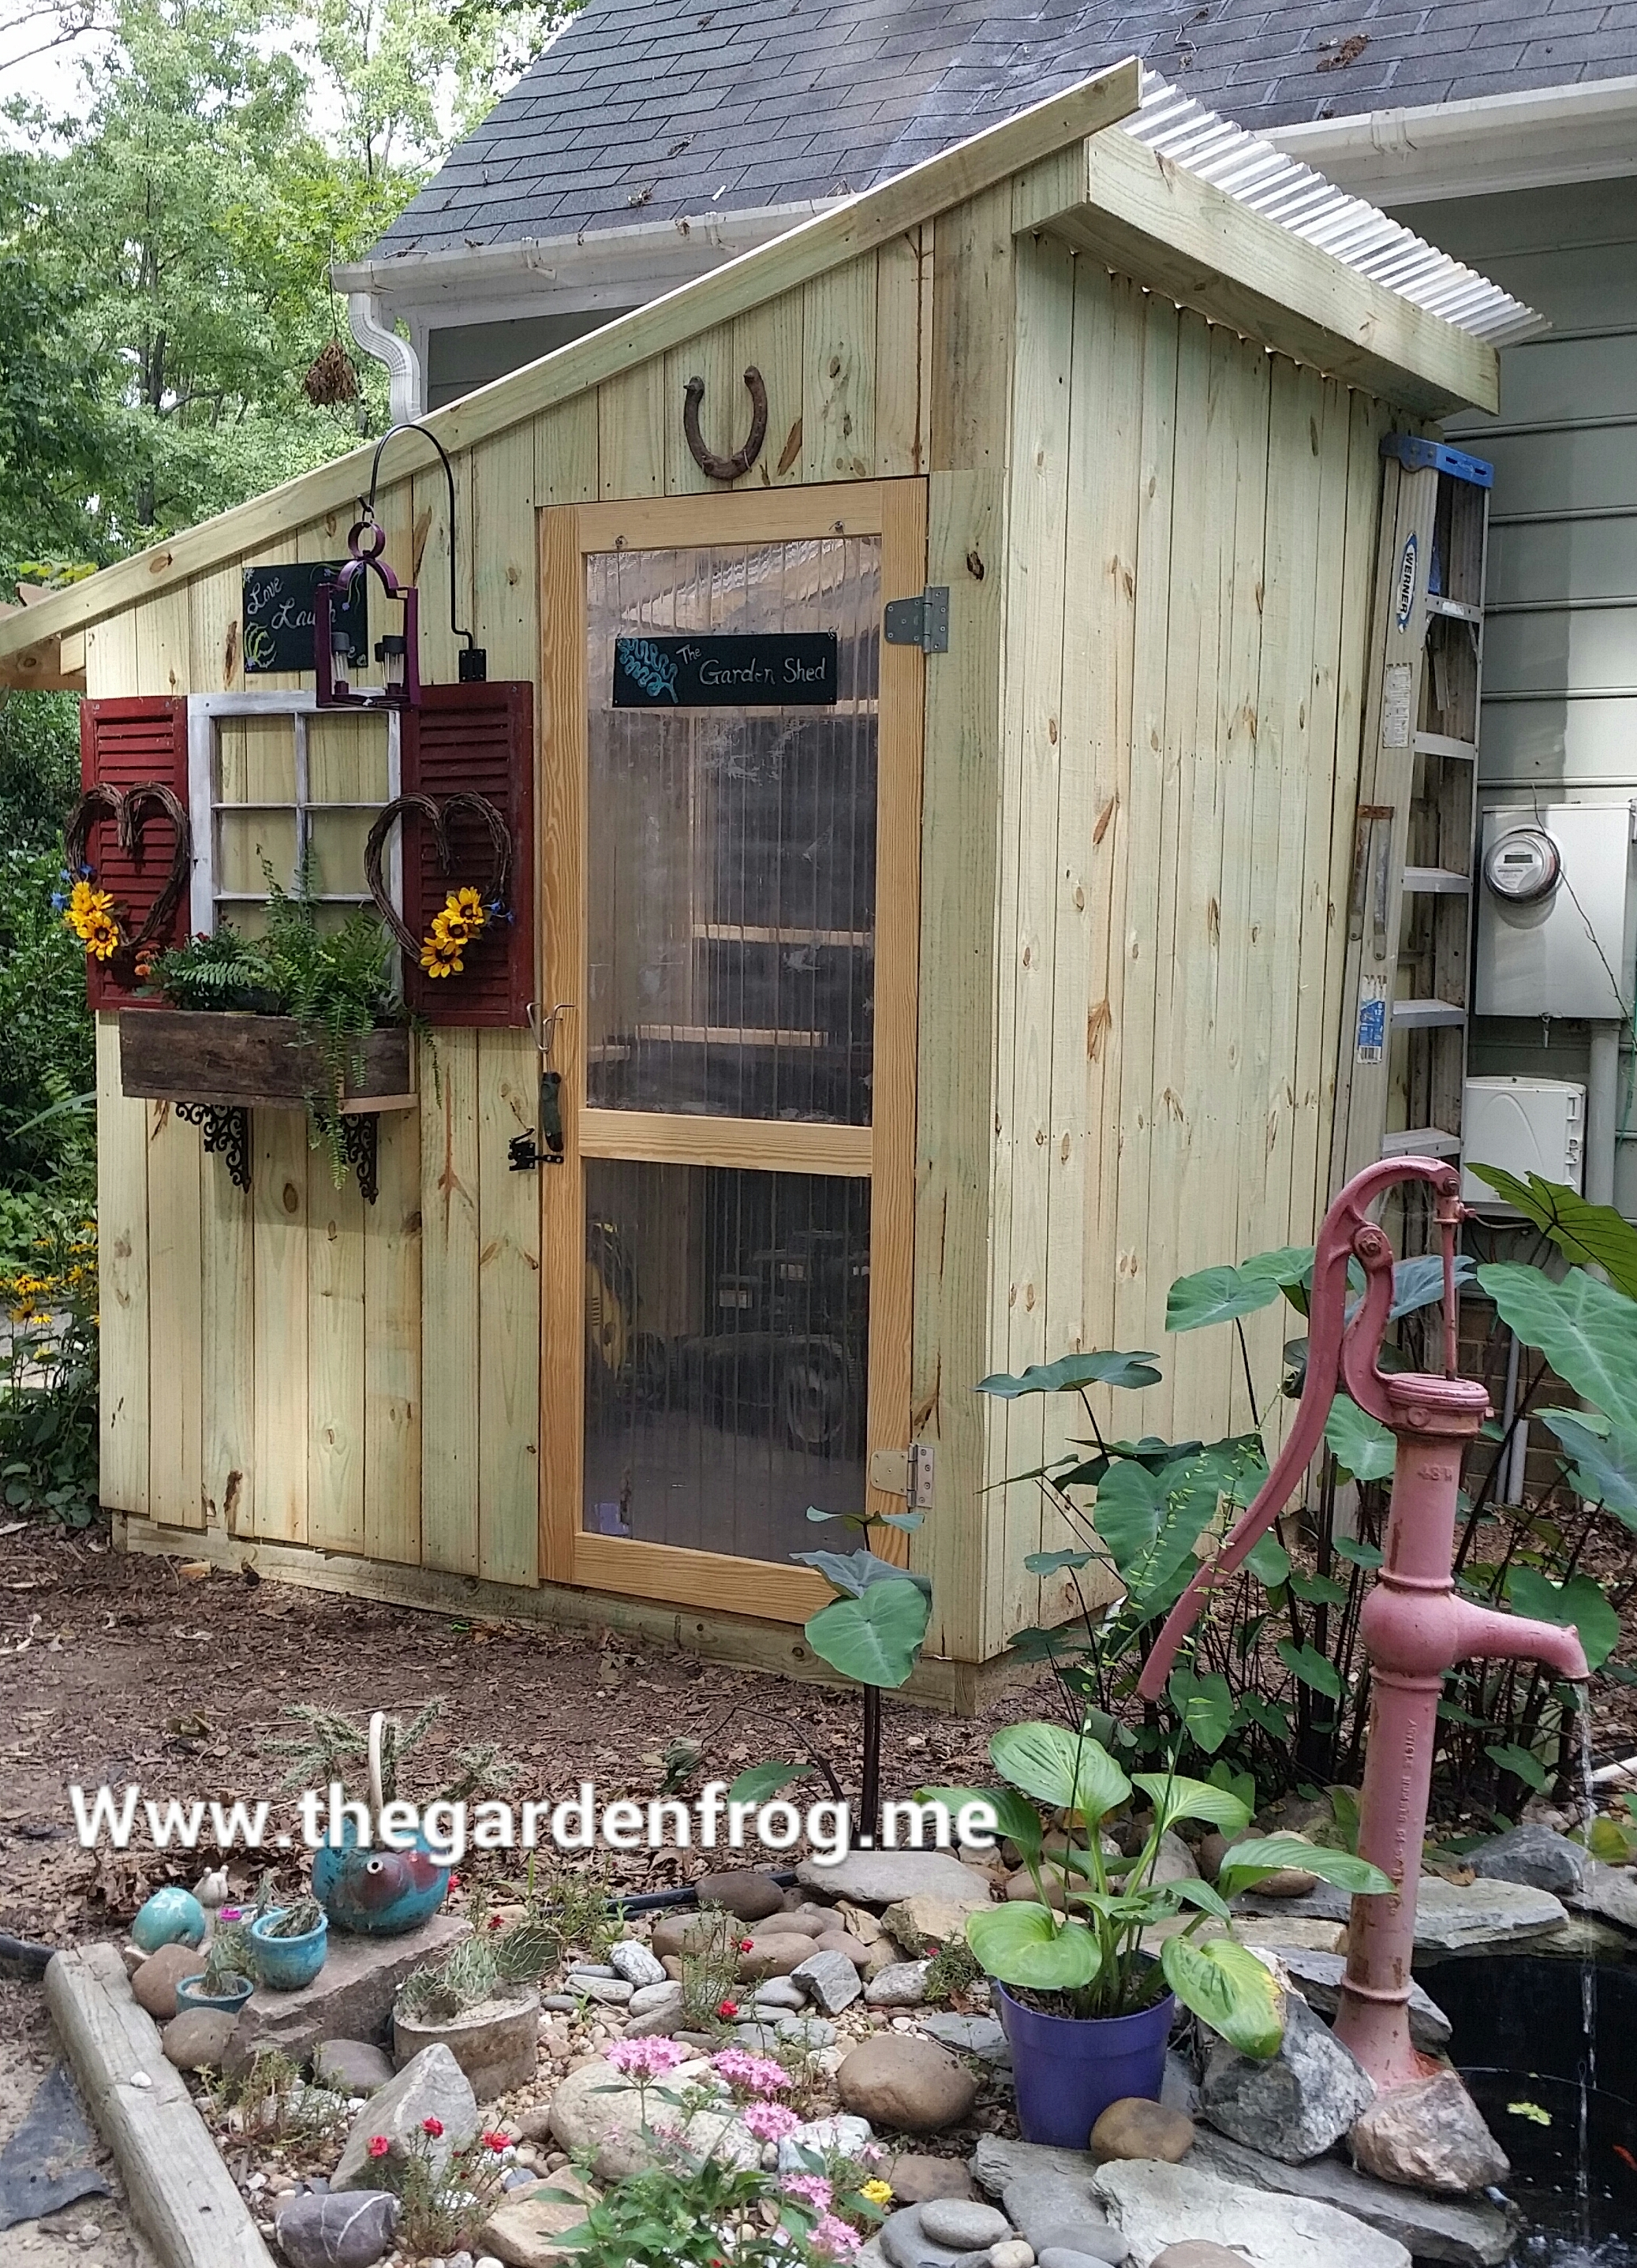 My 300 rustic picket garden shed the garden frog for Shed project